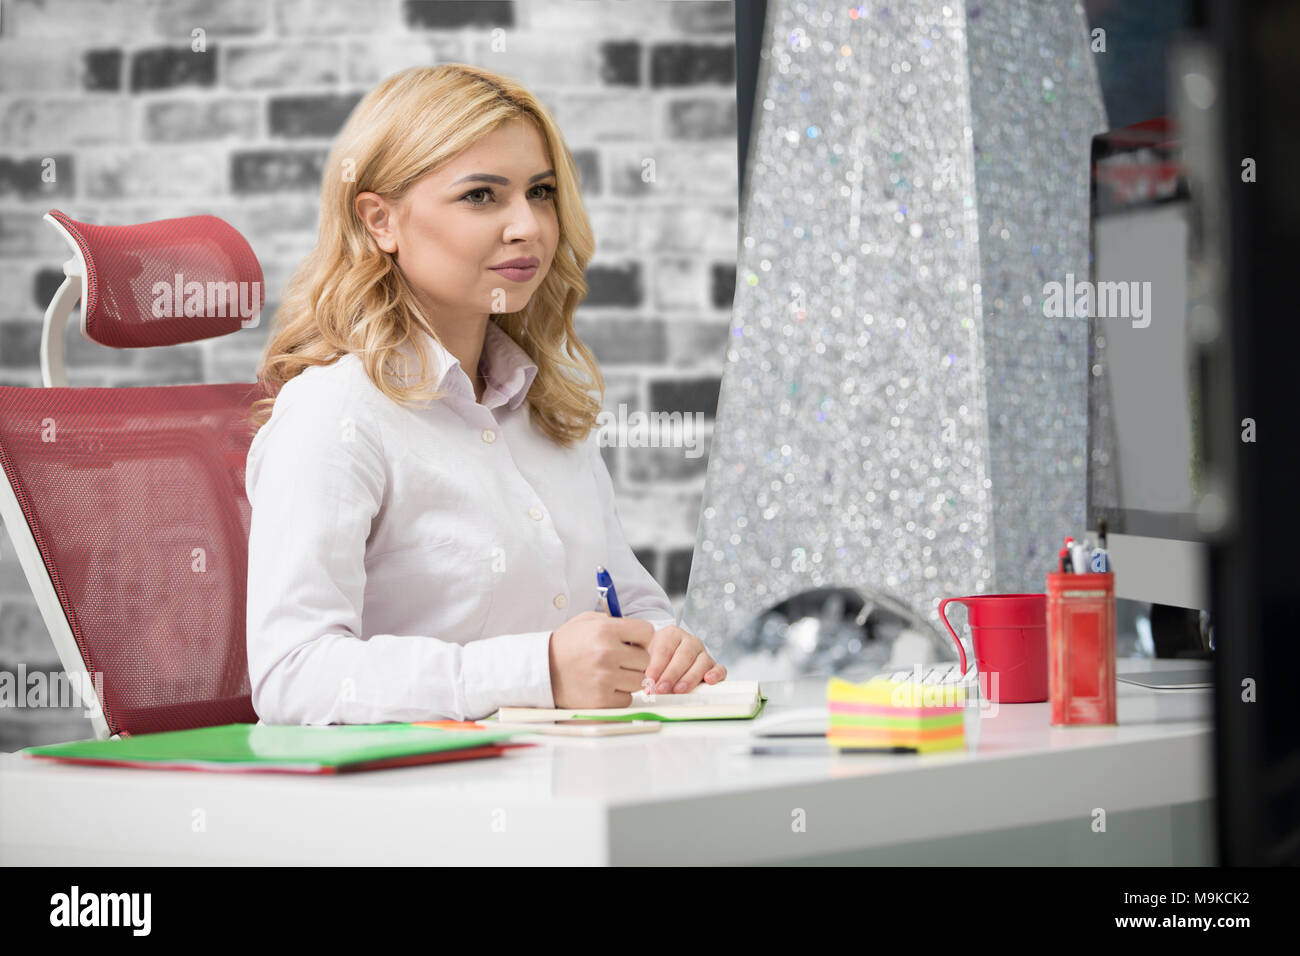 Business and entrepreneurship consept. Beautiful blonde business woman working on laptop - Stock Image